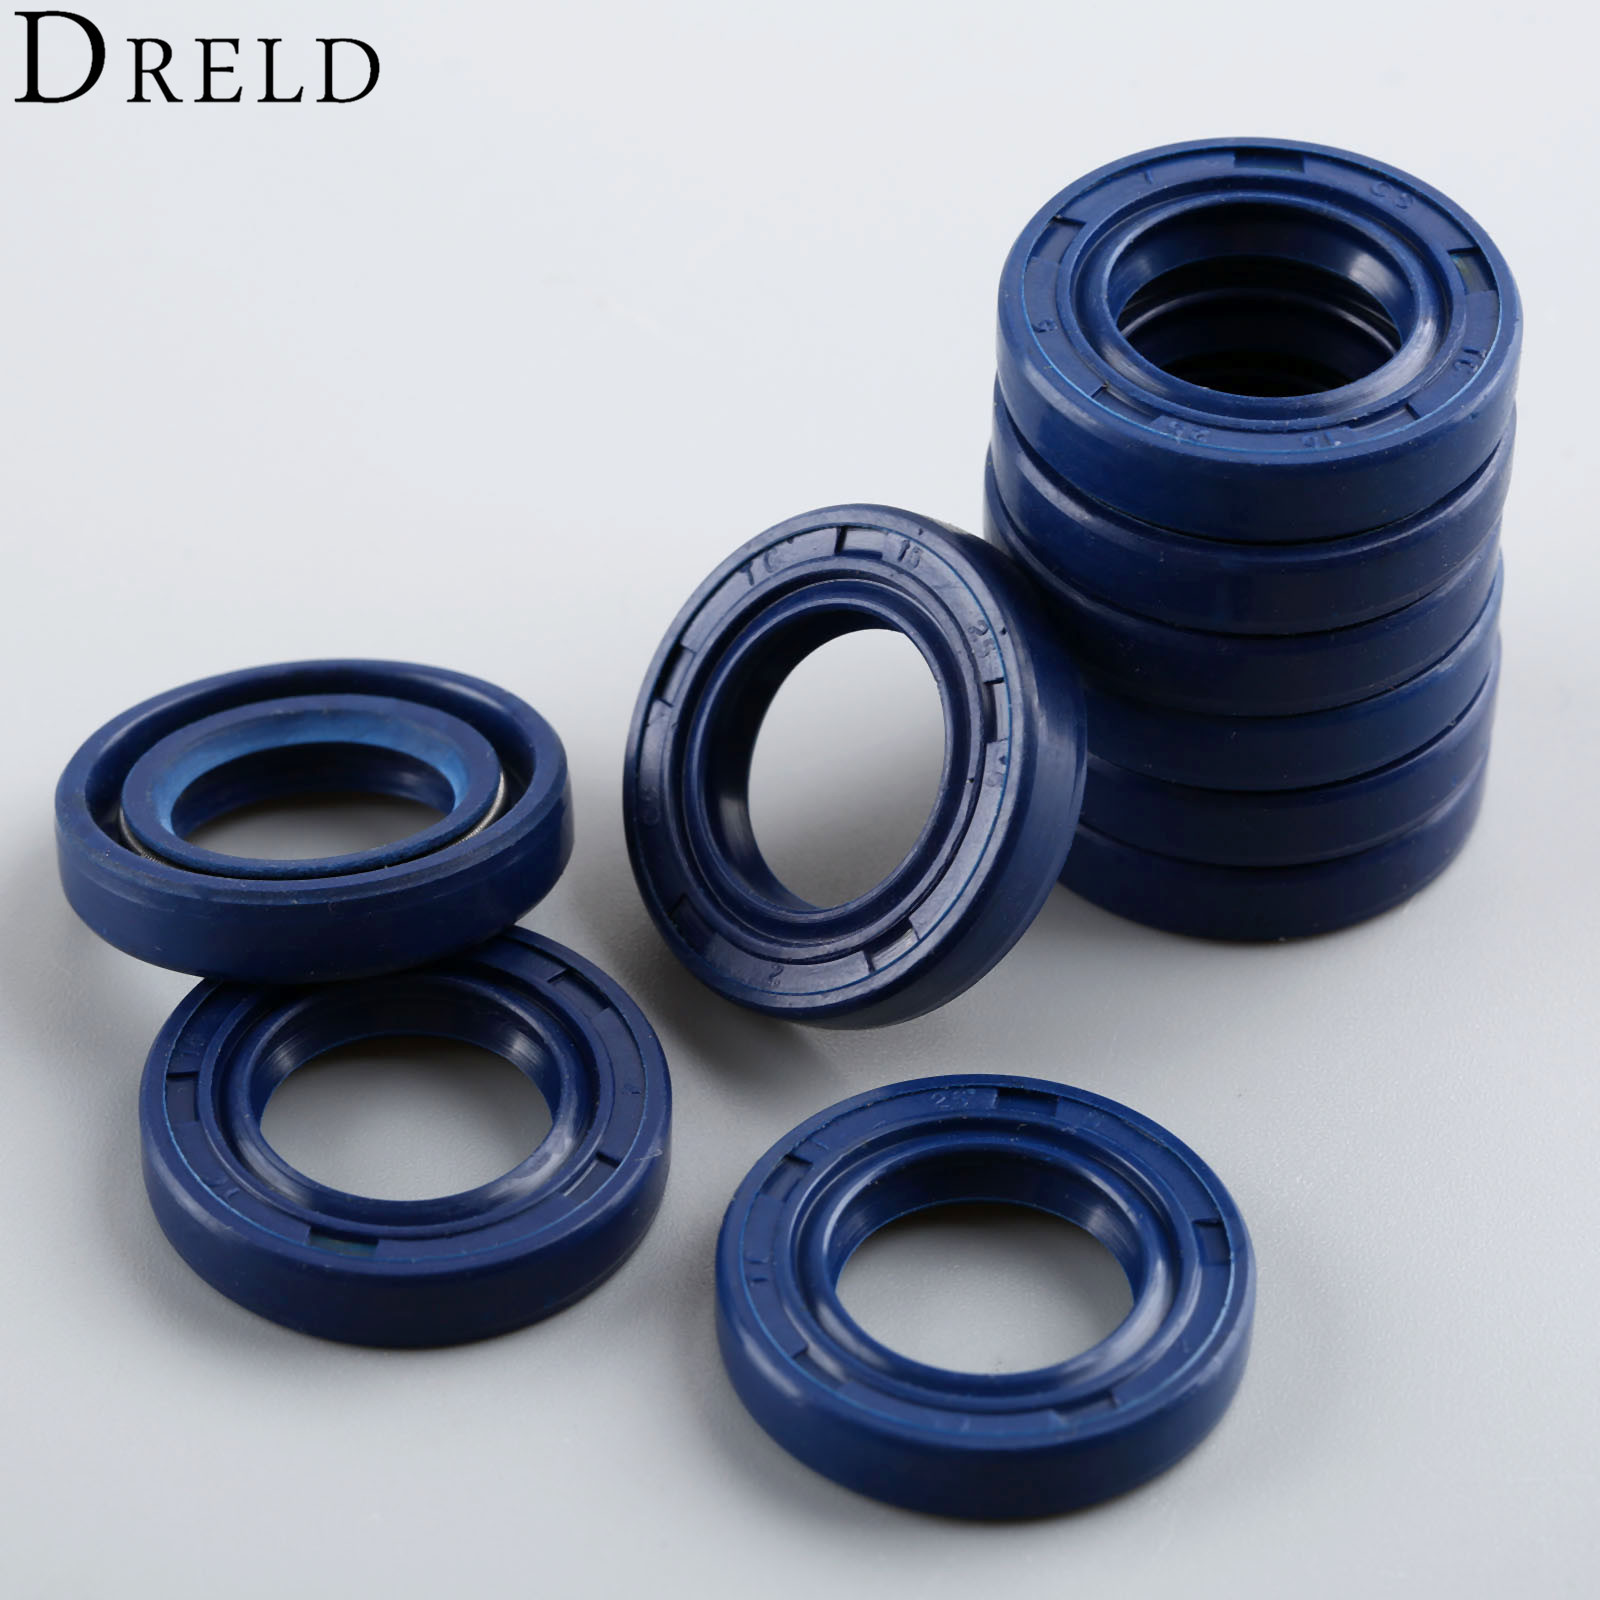 DRELD 10Pcs/lot Chainsaw Oil Seal Kit For STIHL MS250 MS230 MS210 MS180 MS170 017 018 021 023 025 Chainsaw Parts # 9638 003 1581